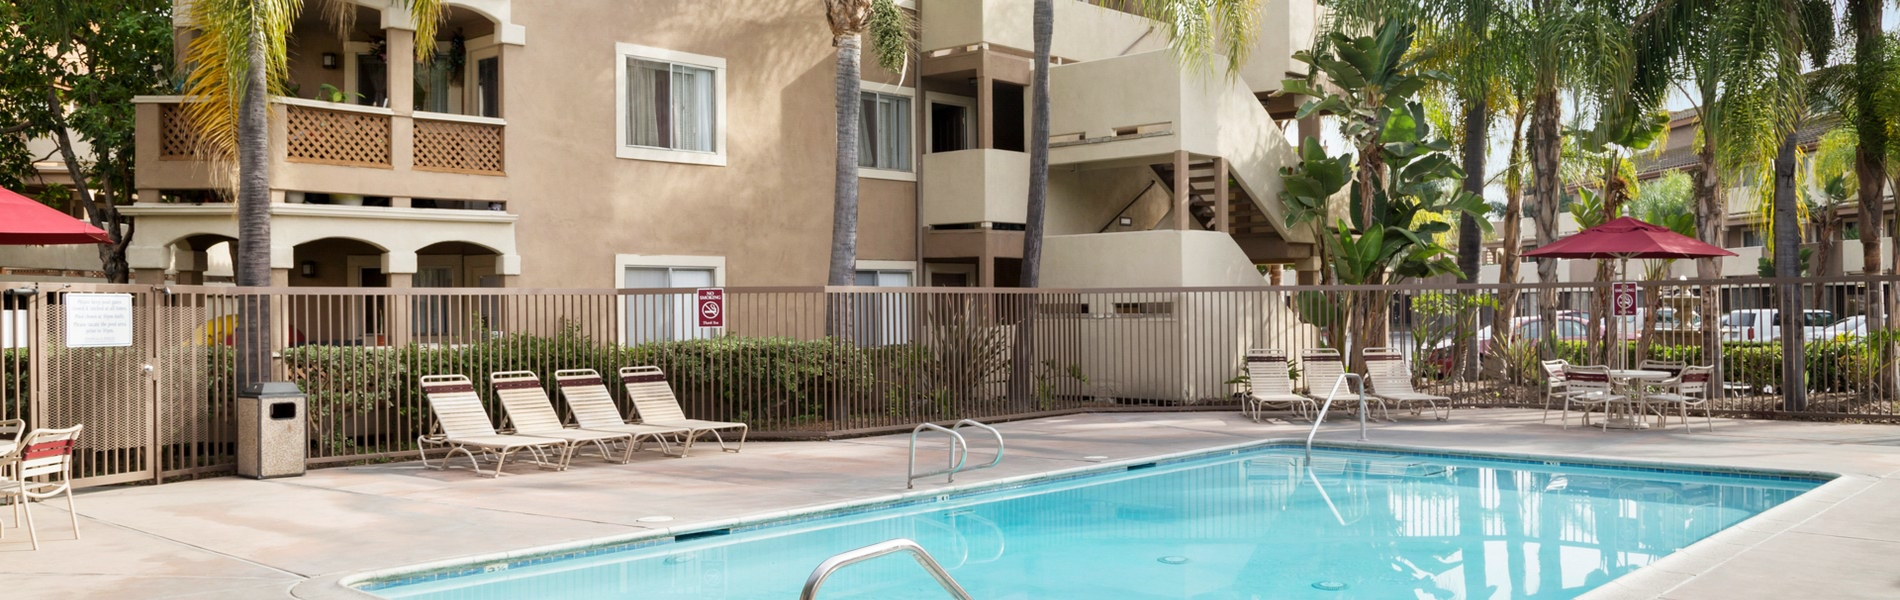 apartments for rent garden grove ca